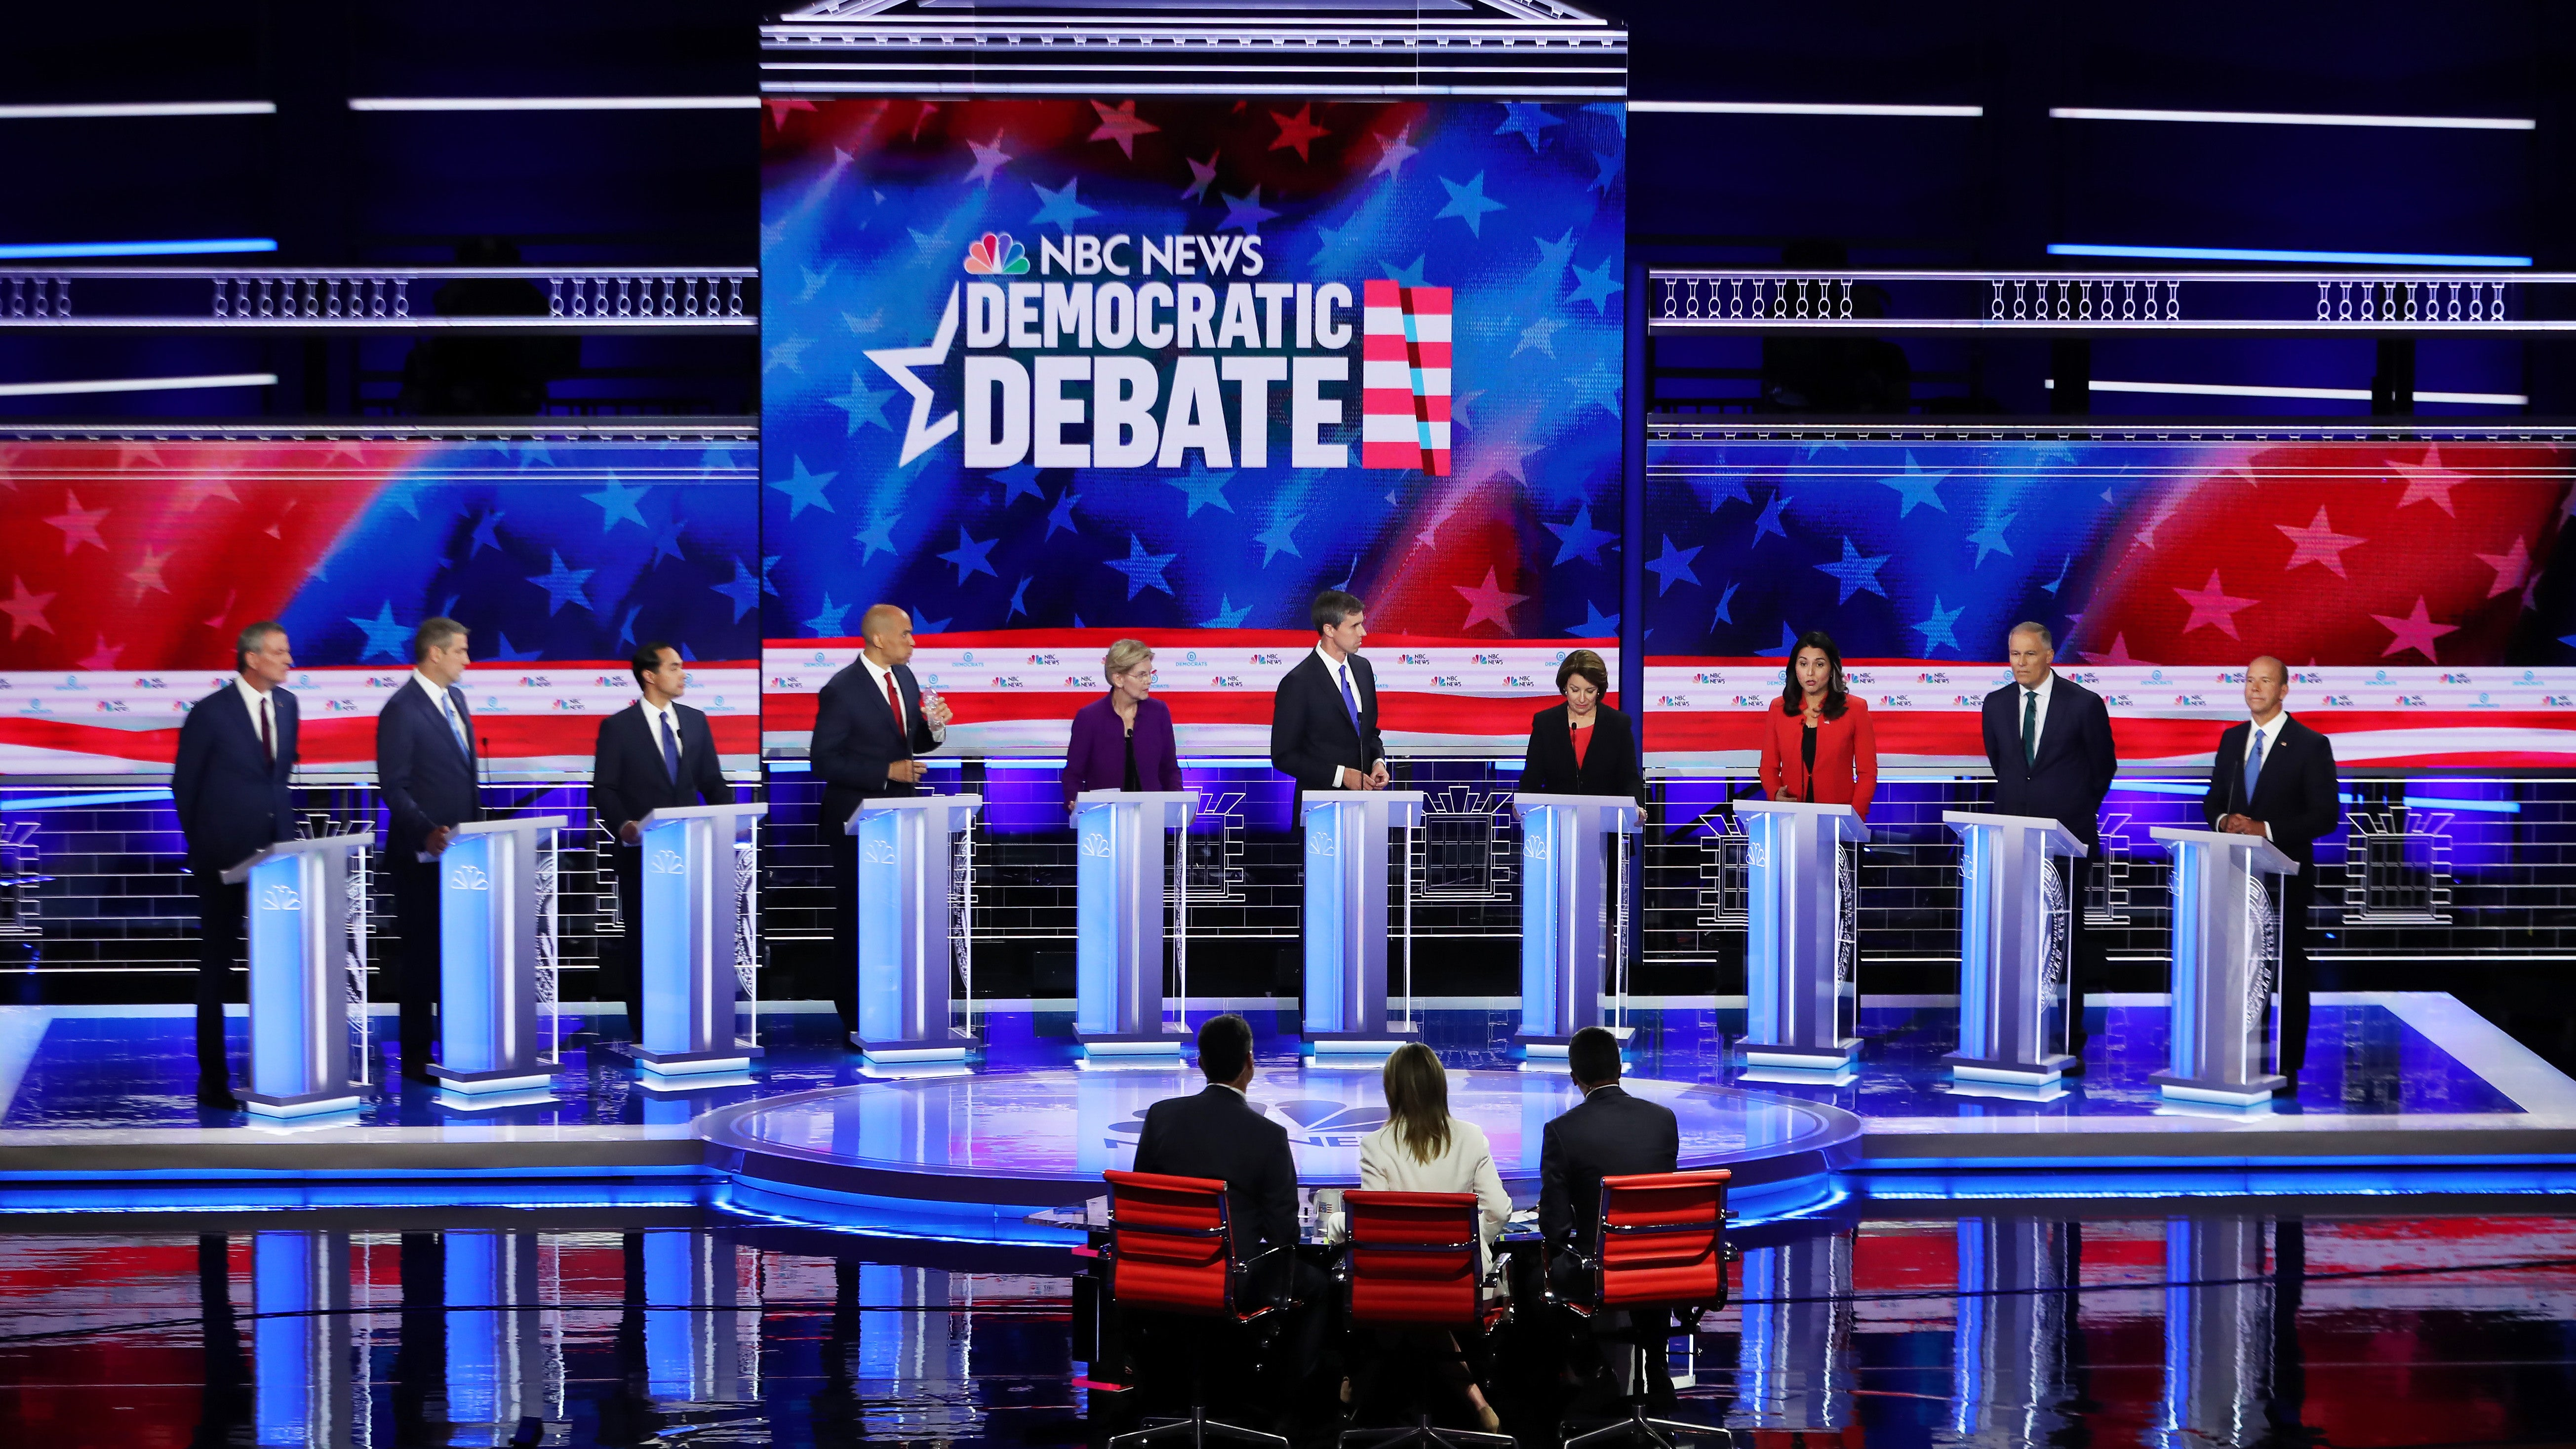 The Best And Worst Moments From Day One Of The U.S. Democratic Presidential Debates